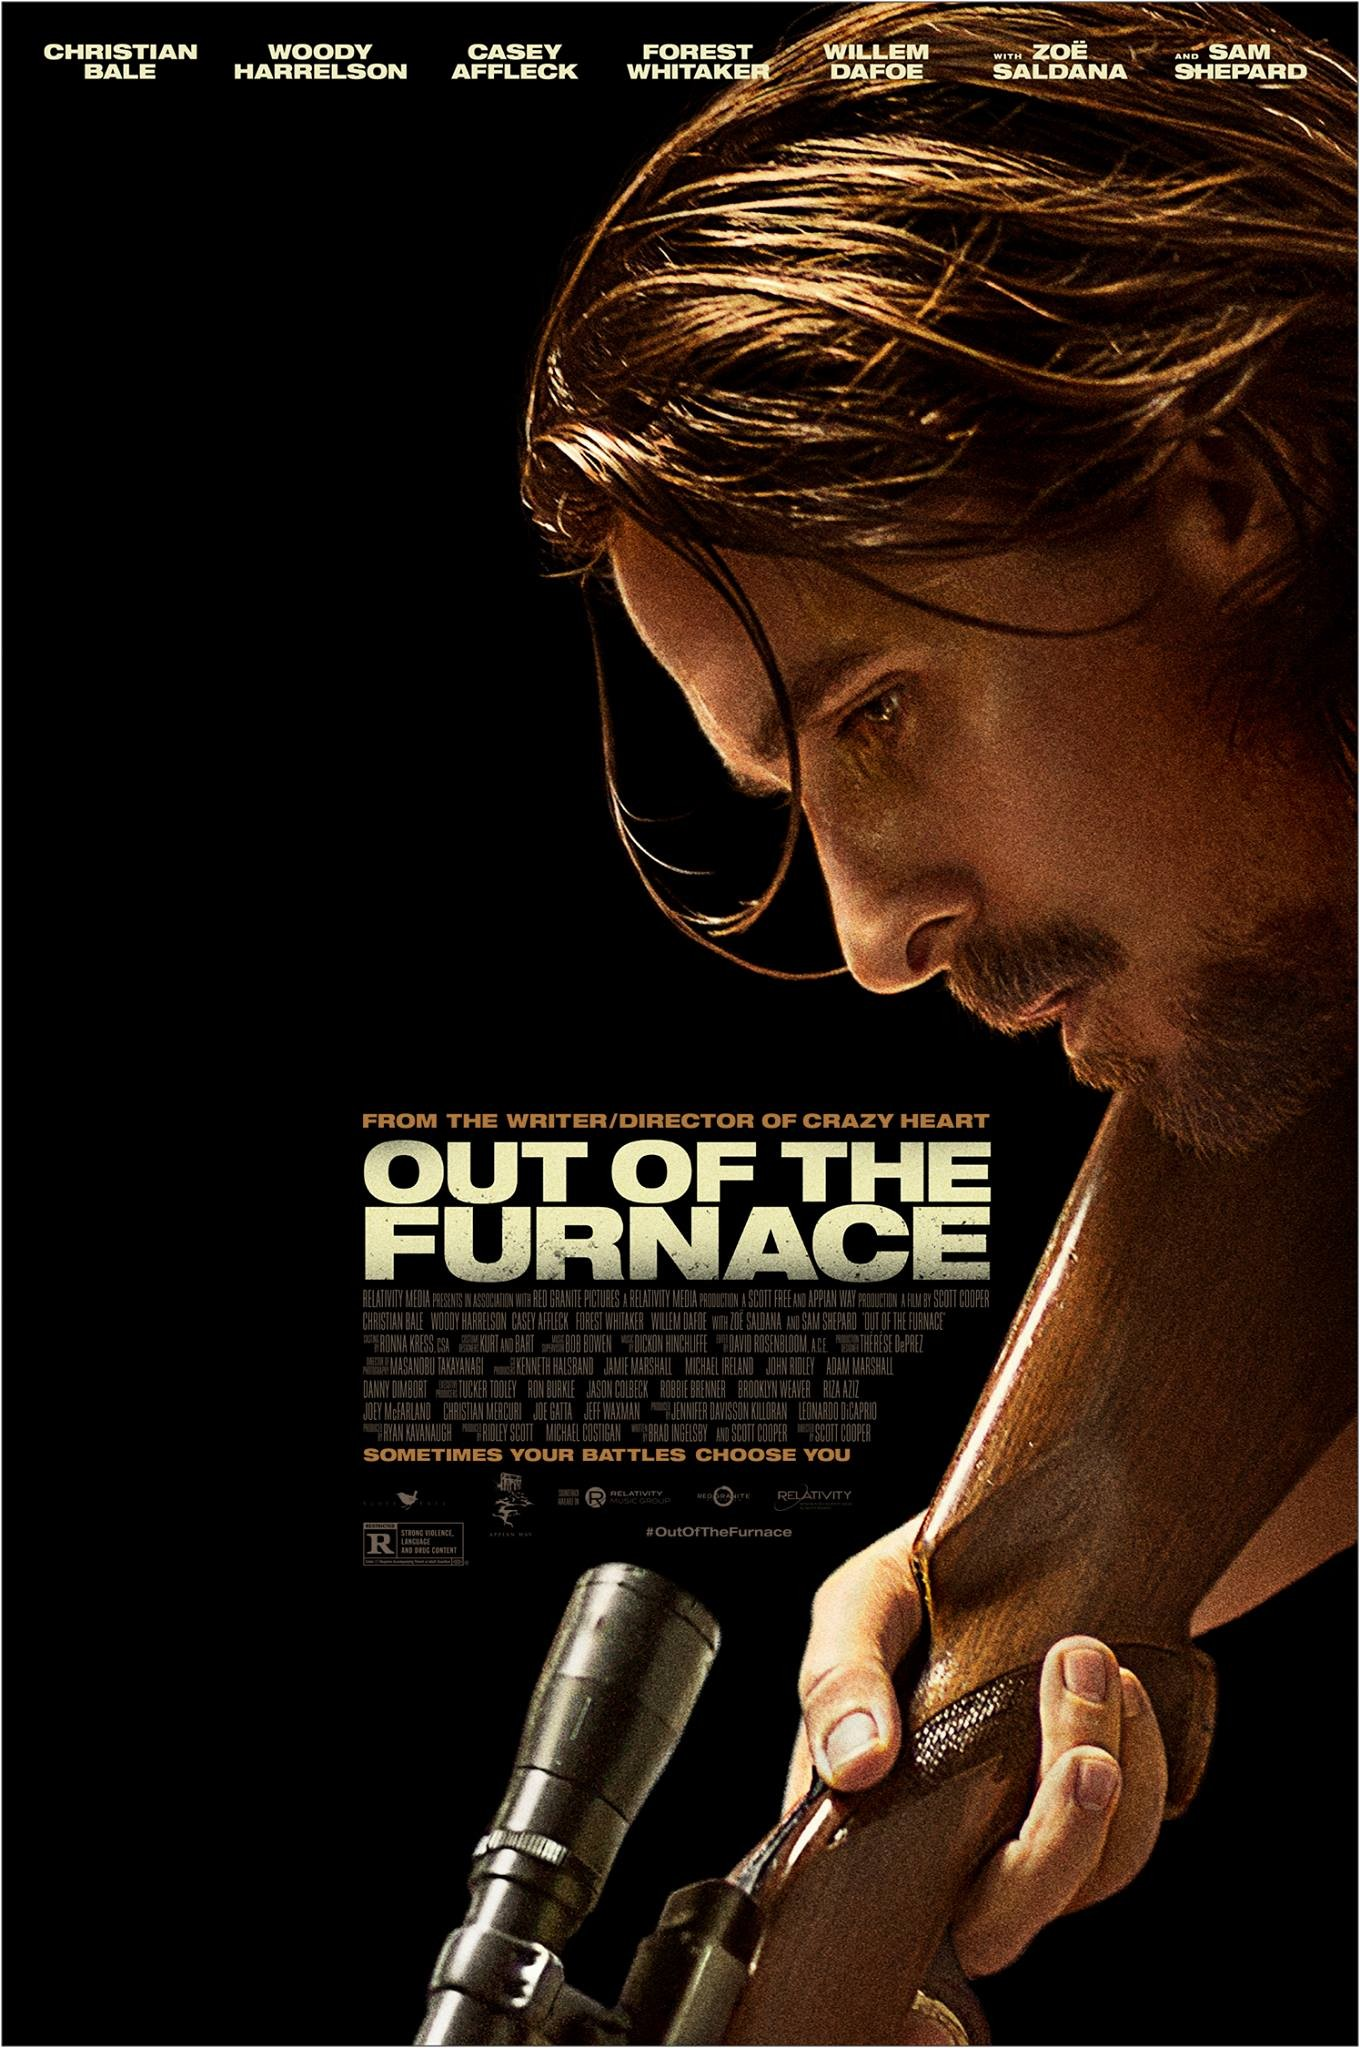 Out Of The Furnace-Official Poster Banner PROMO POSTER-07OUTUBRO2013